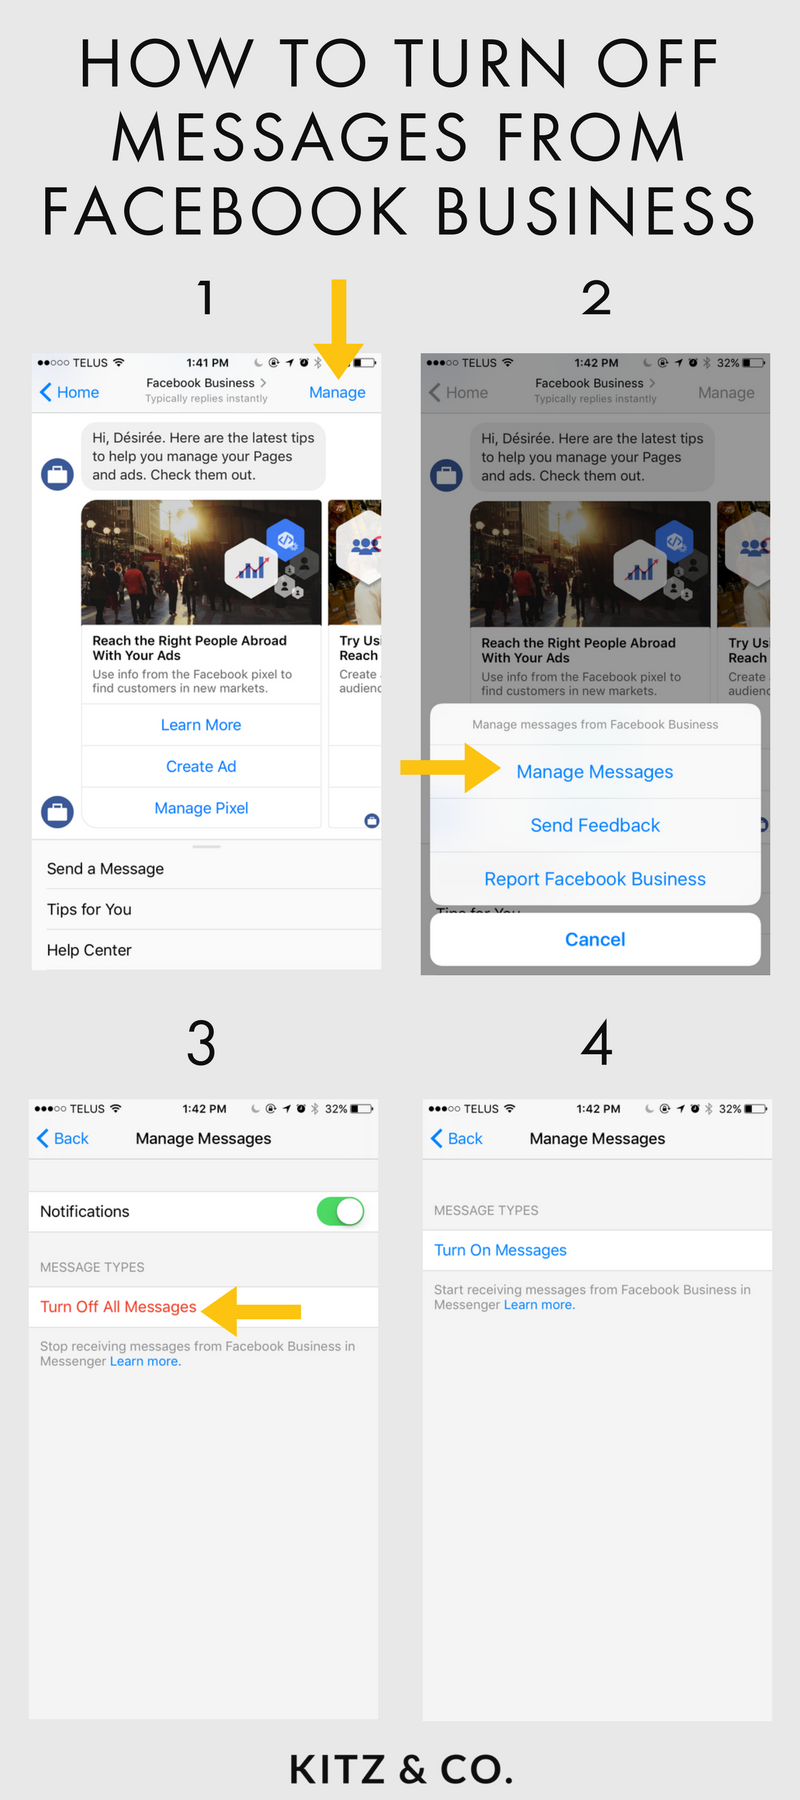 Sick Of Getting Messages From Facebook Business? Here's How